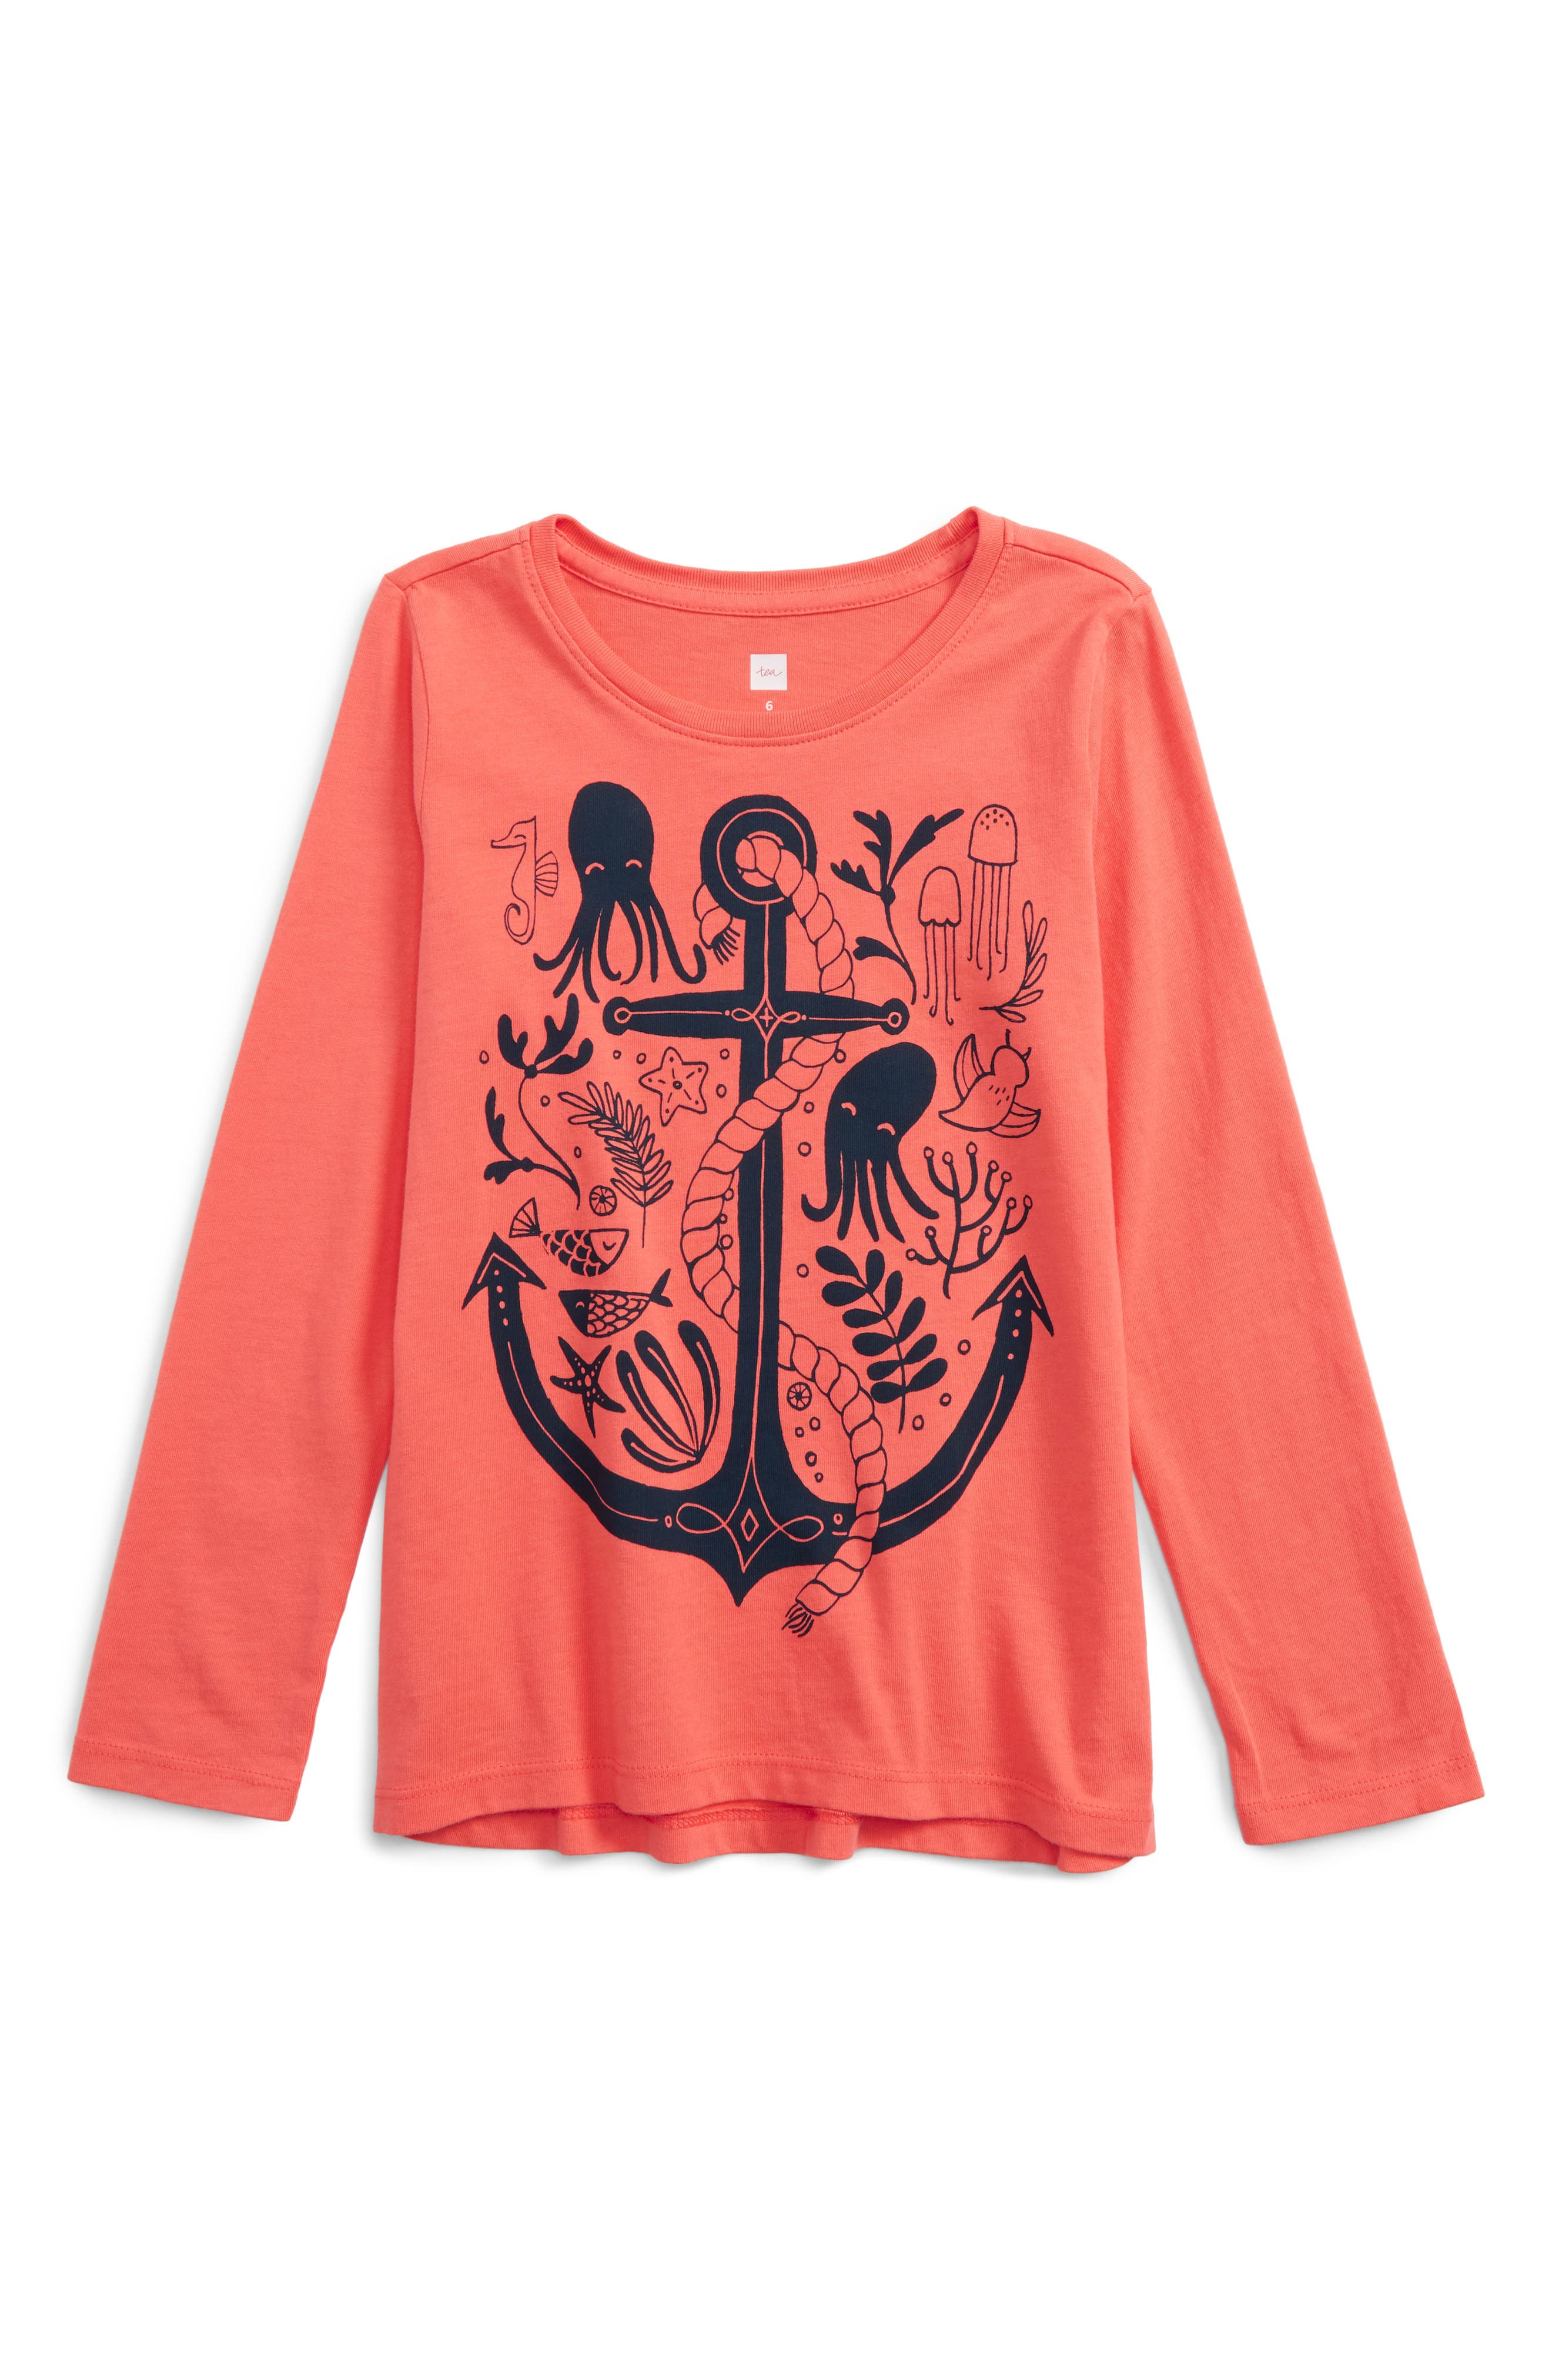 River Polly Graphic Tee,                             Main thumbnail 1, color,                             800